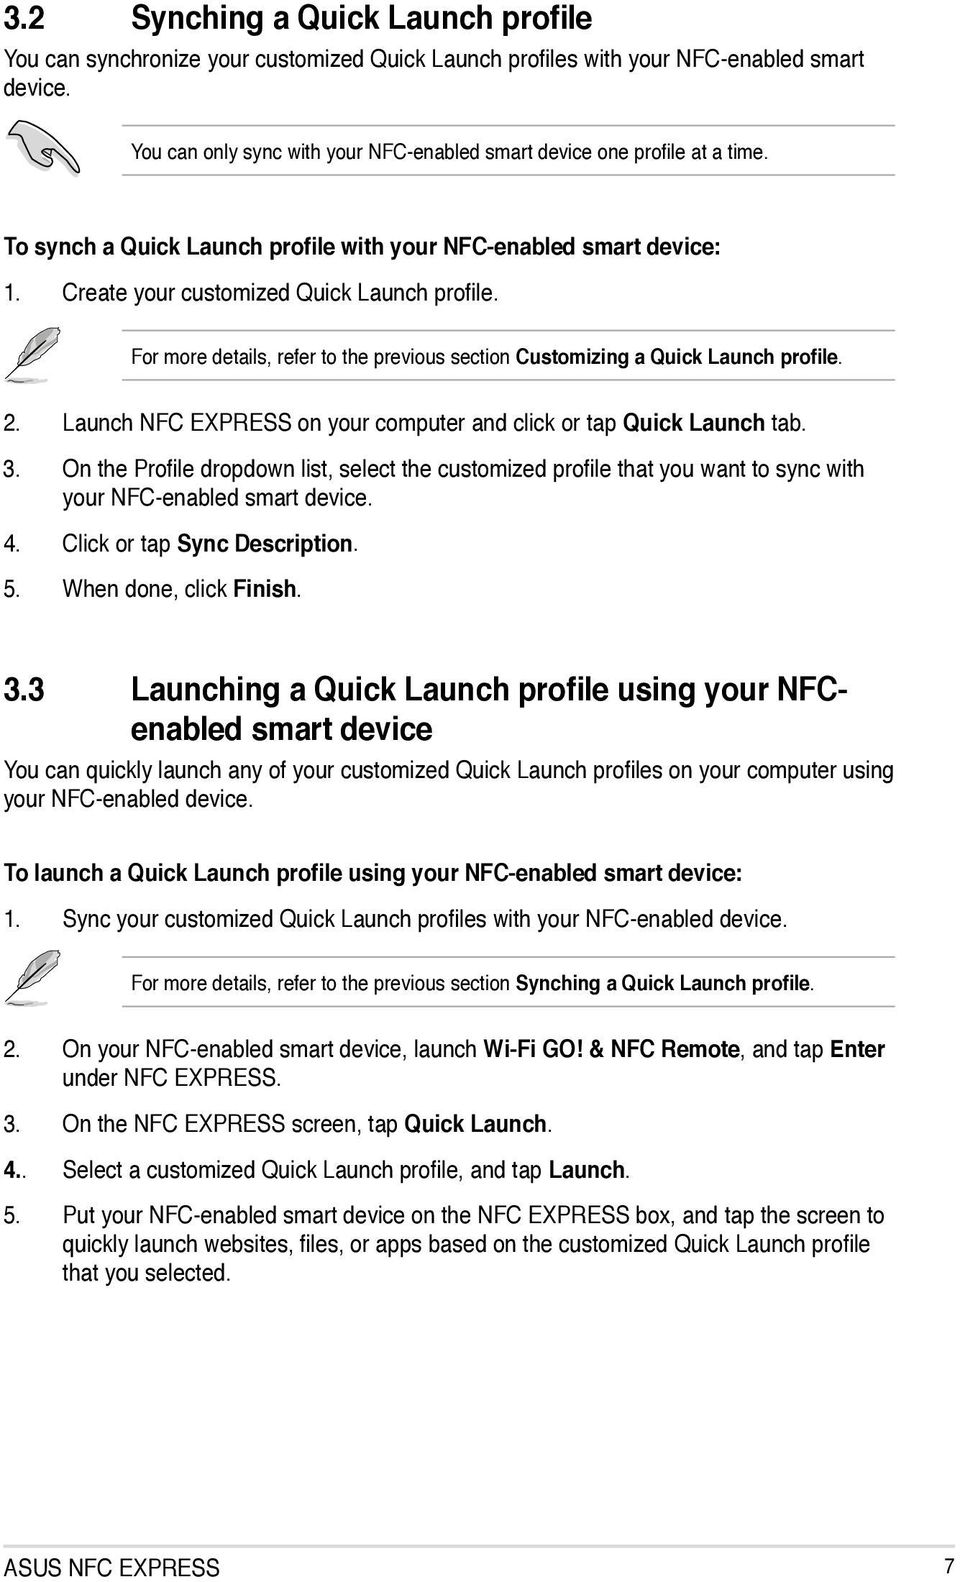 For more details, refer to the previous section Customizing a Quick Launch profile. 2. Launch NFC EXPRESS on your computer and click or tap Quick Launch tab. 3.